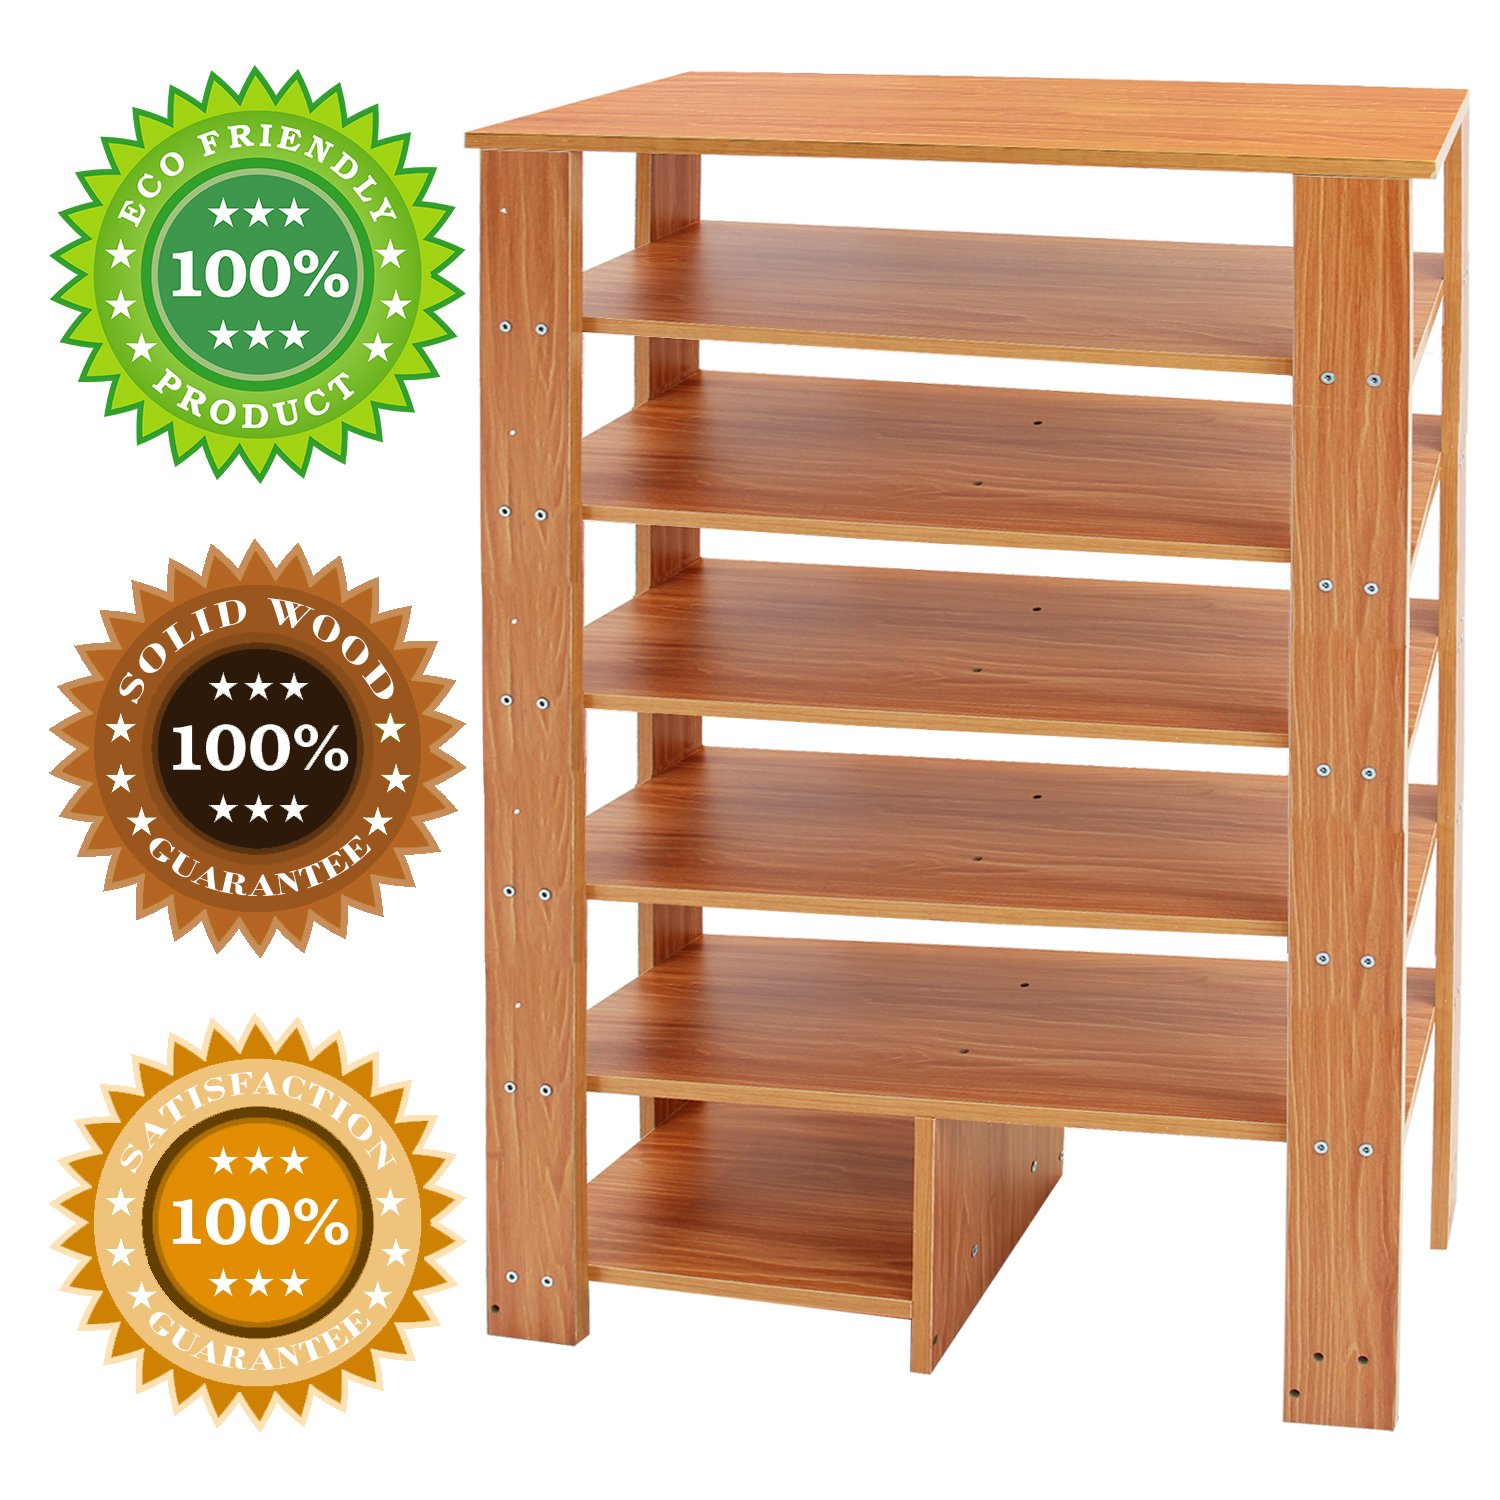 Jerry & Maggie - 6 Tier Wood MDF Solid Shelf Shoe Rack with One Footstool/Shoe Storage Shelves Free Standing Flat Shoe Racks Classic Style -100% Multi Function Shelf Organizer - Natural Wood Tone by Jerry & Maggie (Image #4)